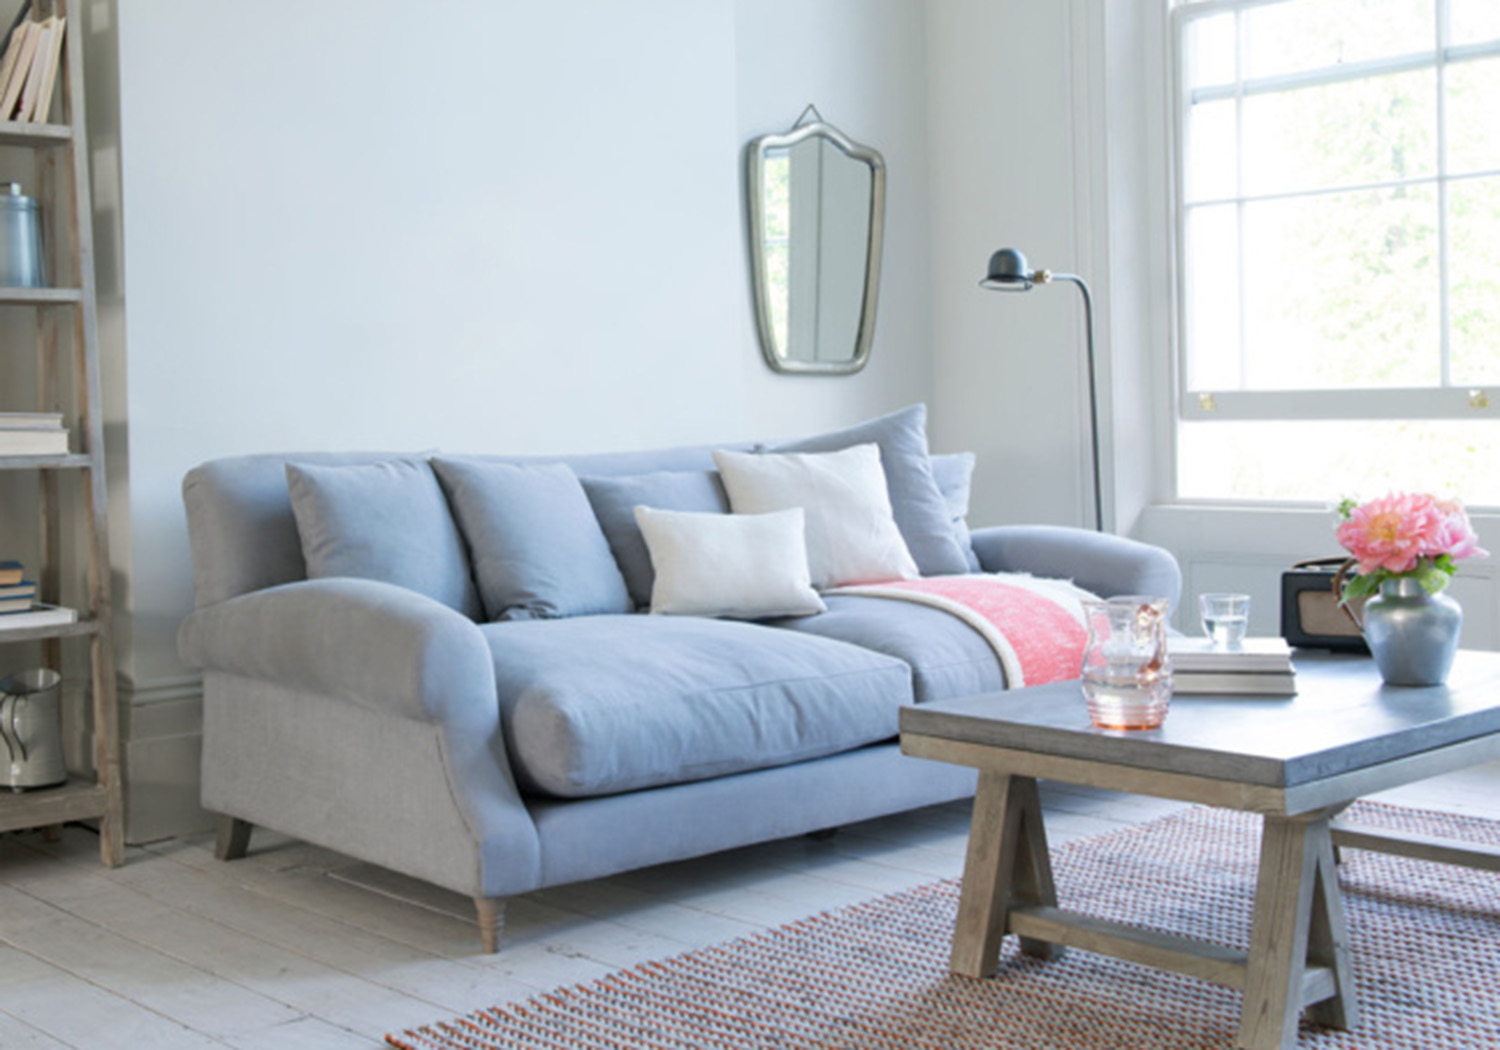 Guide to buying your home's comfy couch